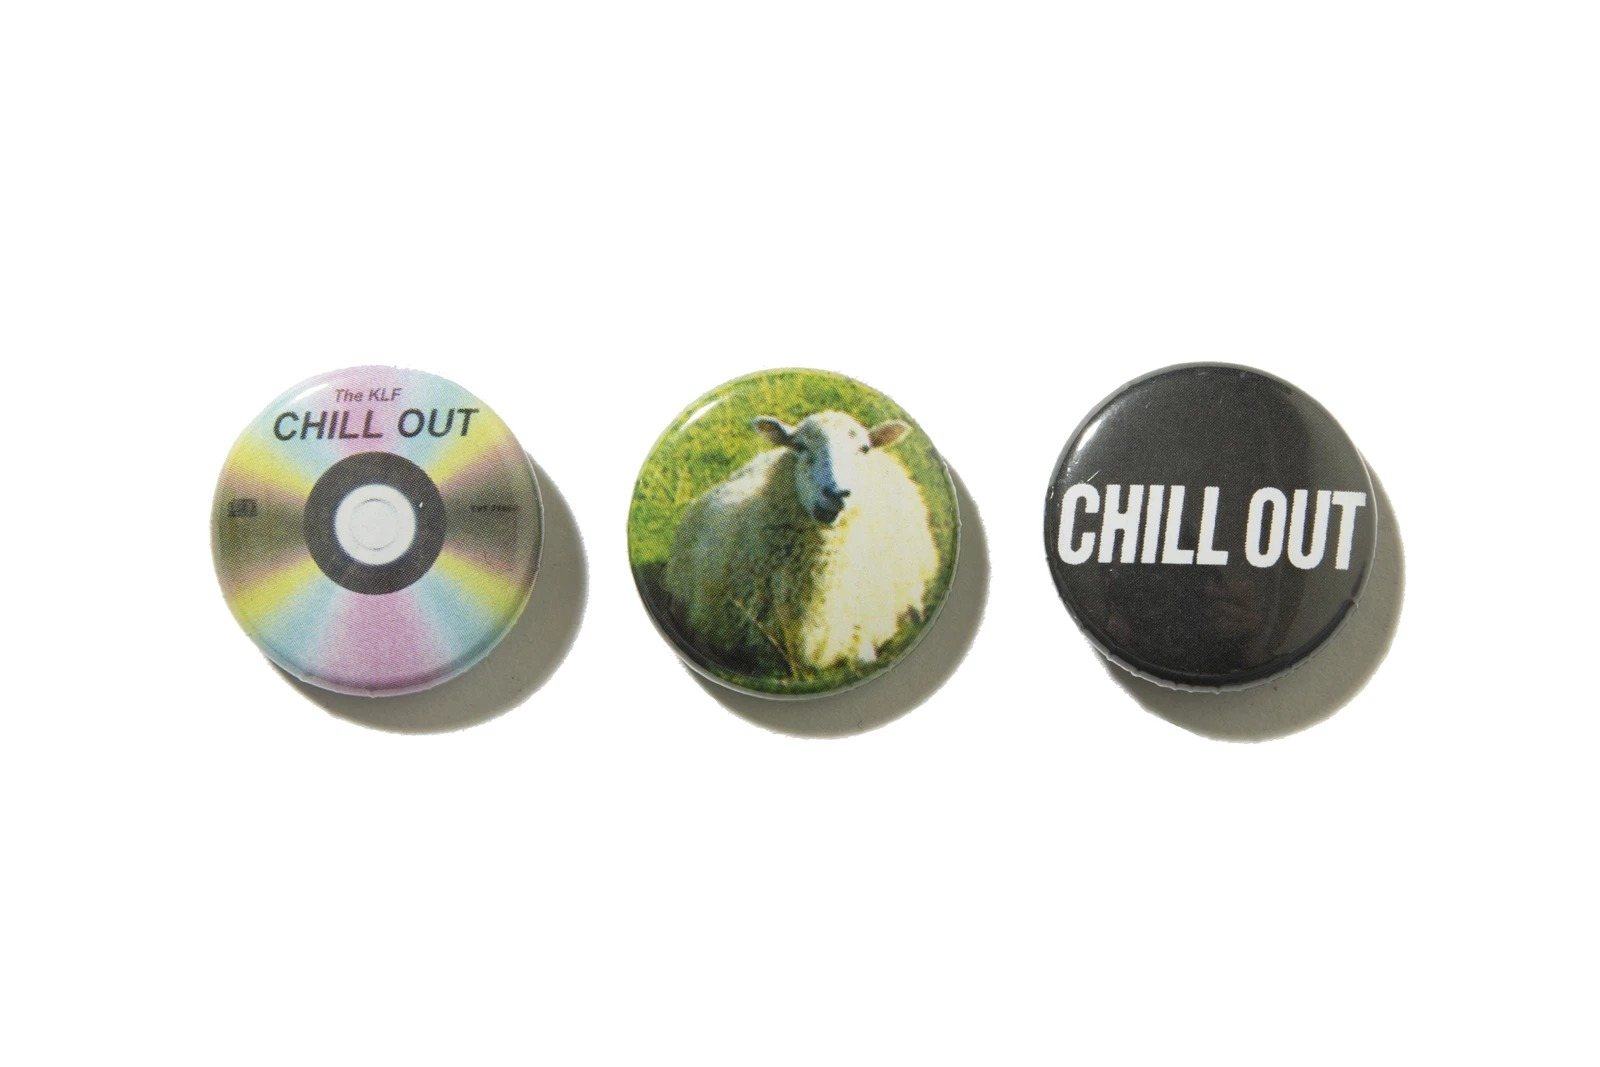 chill-out-chill-out-1-pin-set_p1